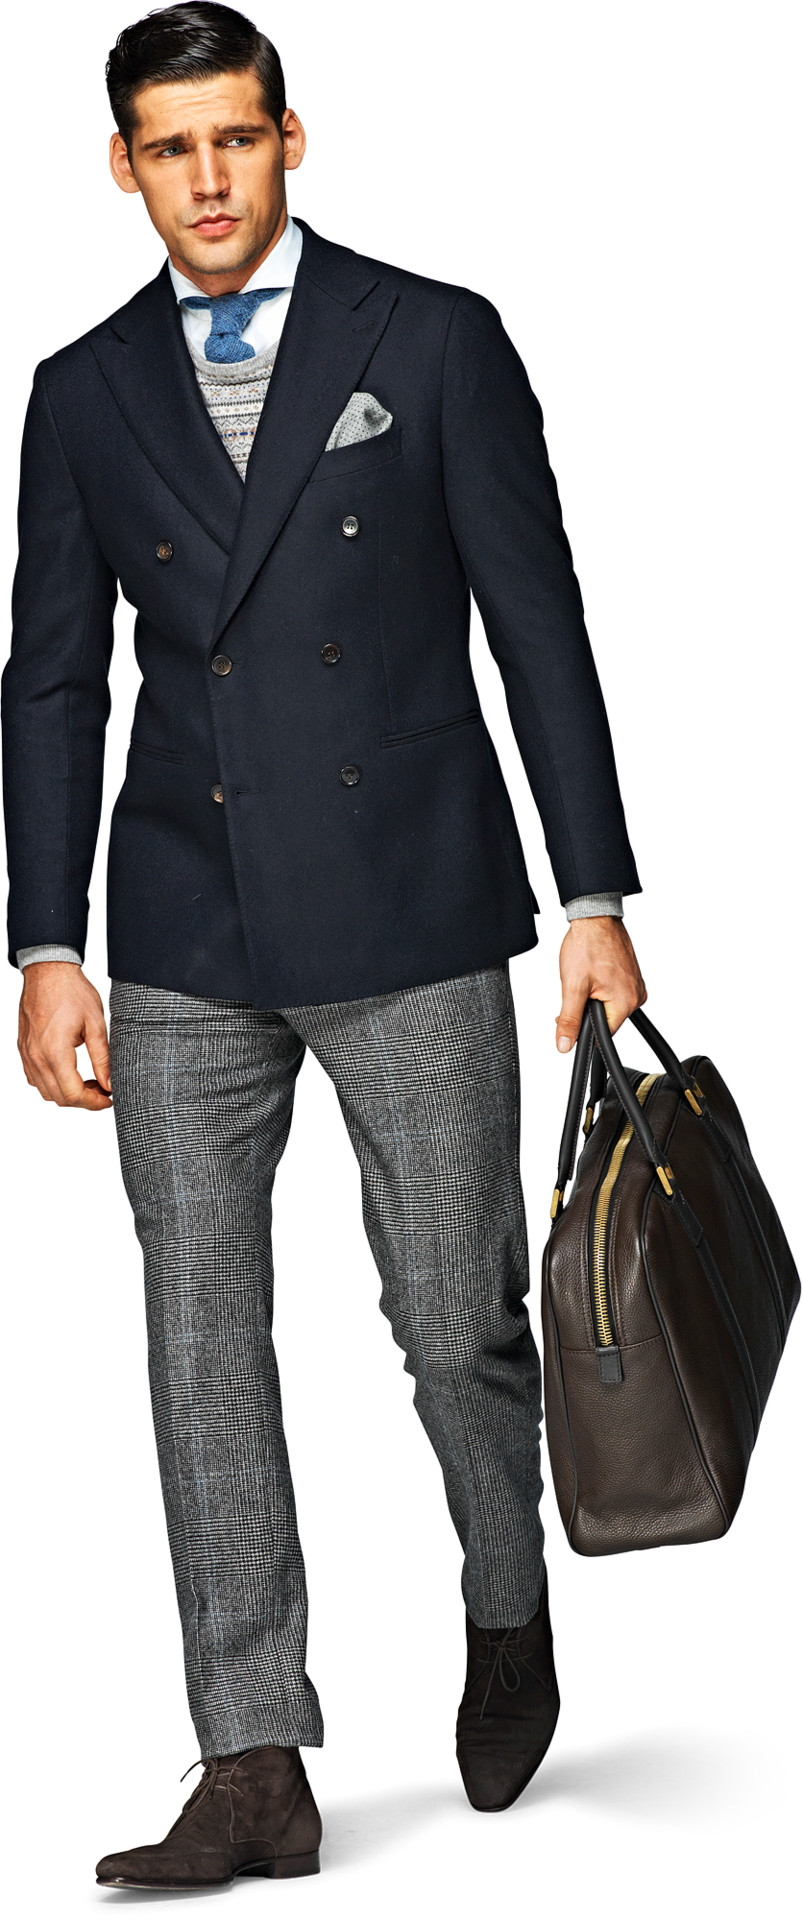 Man In Suit Png image #9476 - Man PNG